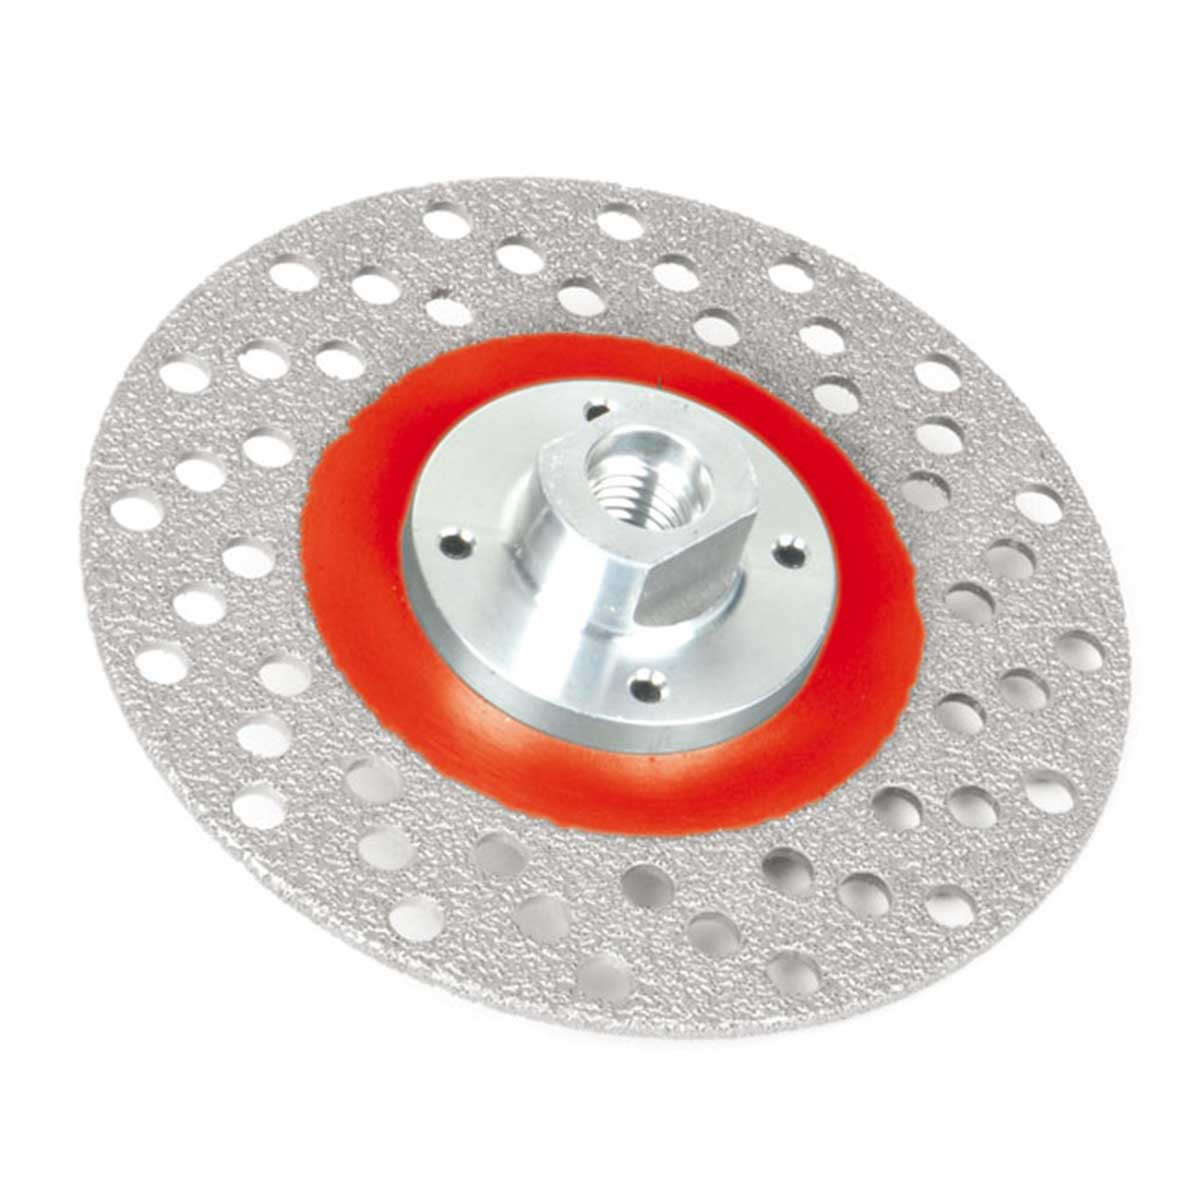 Montolit 5 inch Diamond Cutting and Grinding Wheel